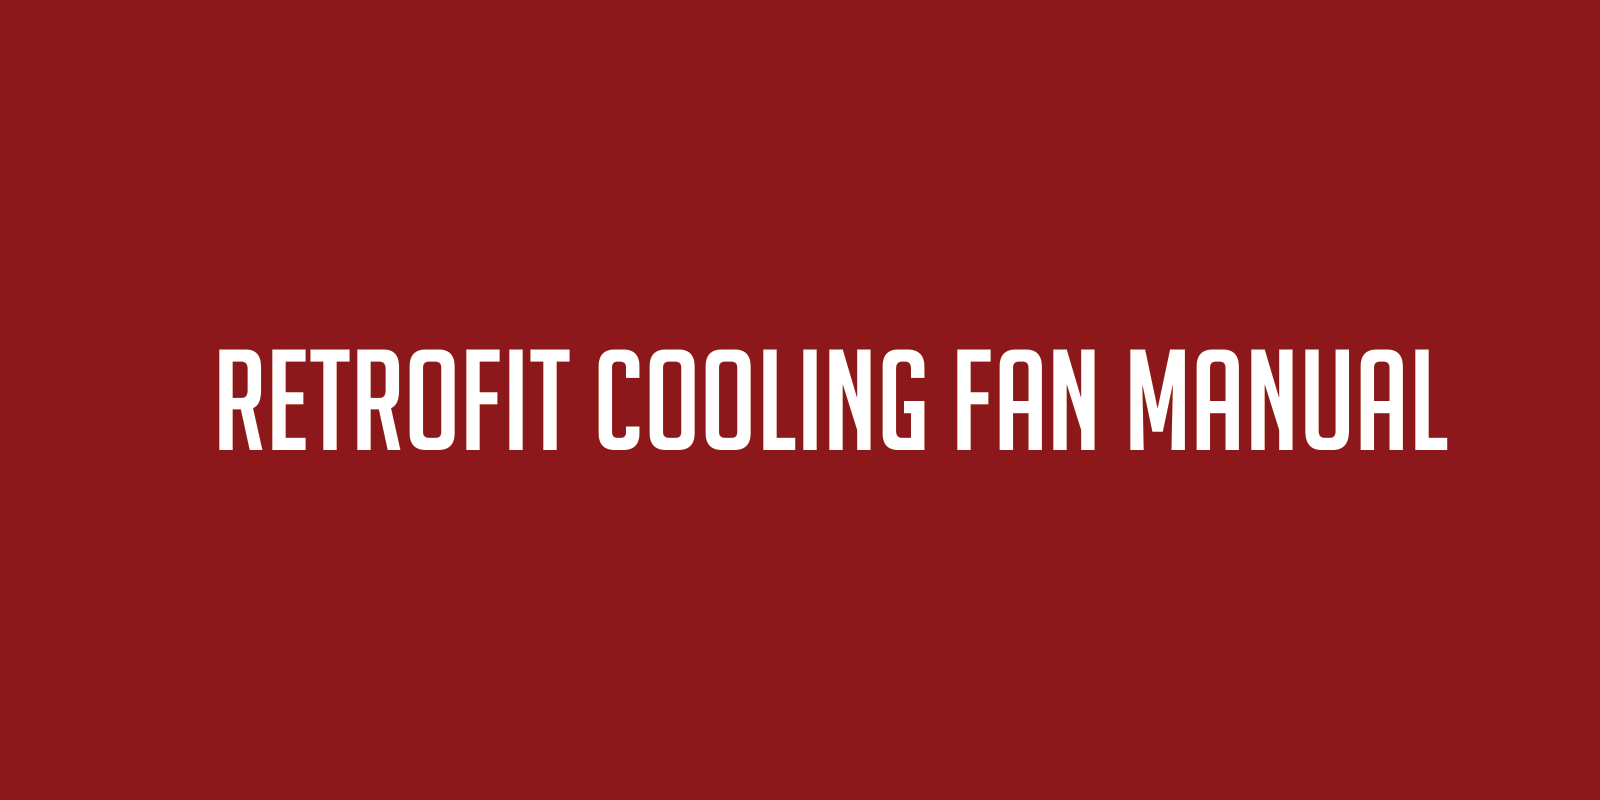 Retrofit Cooling Fan Manual